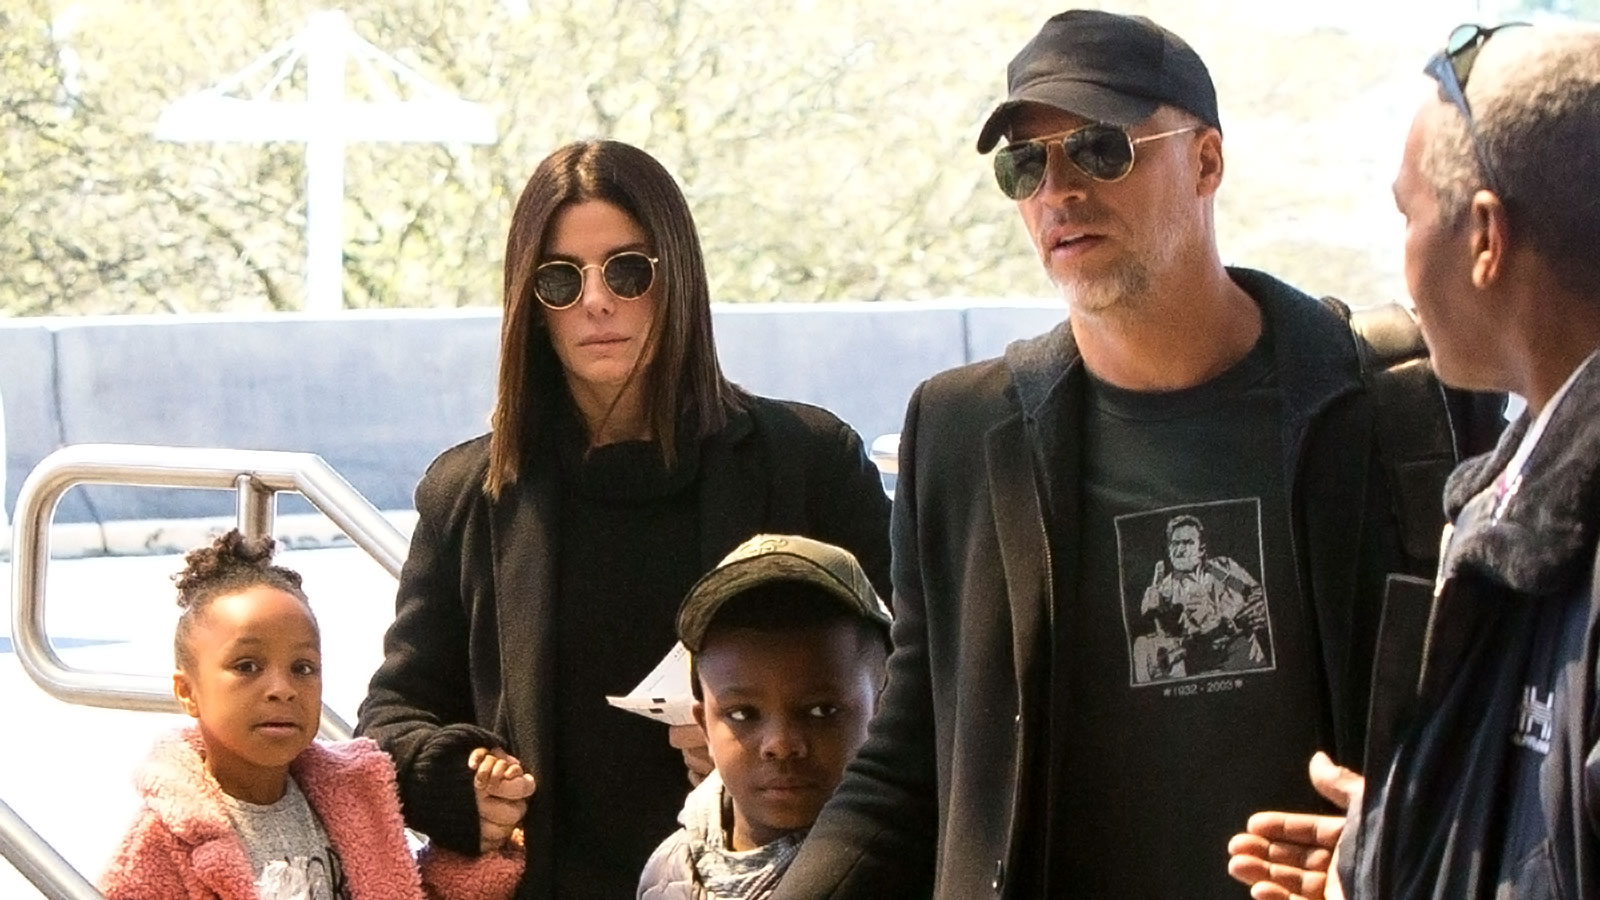 Sandra Bullock and Boyfriend Bryan Randall Spend Time With